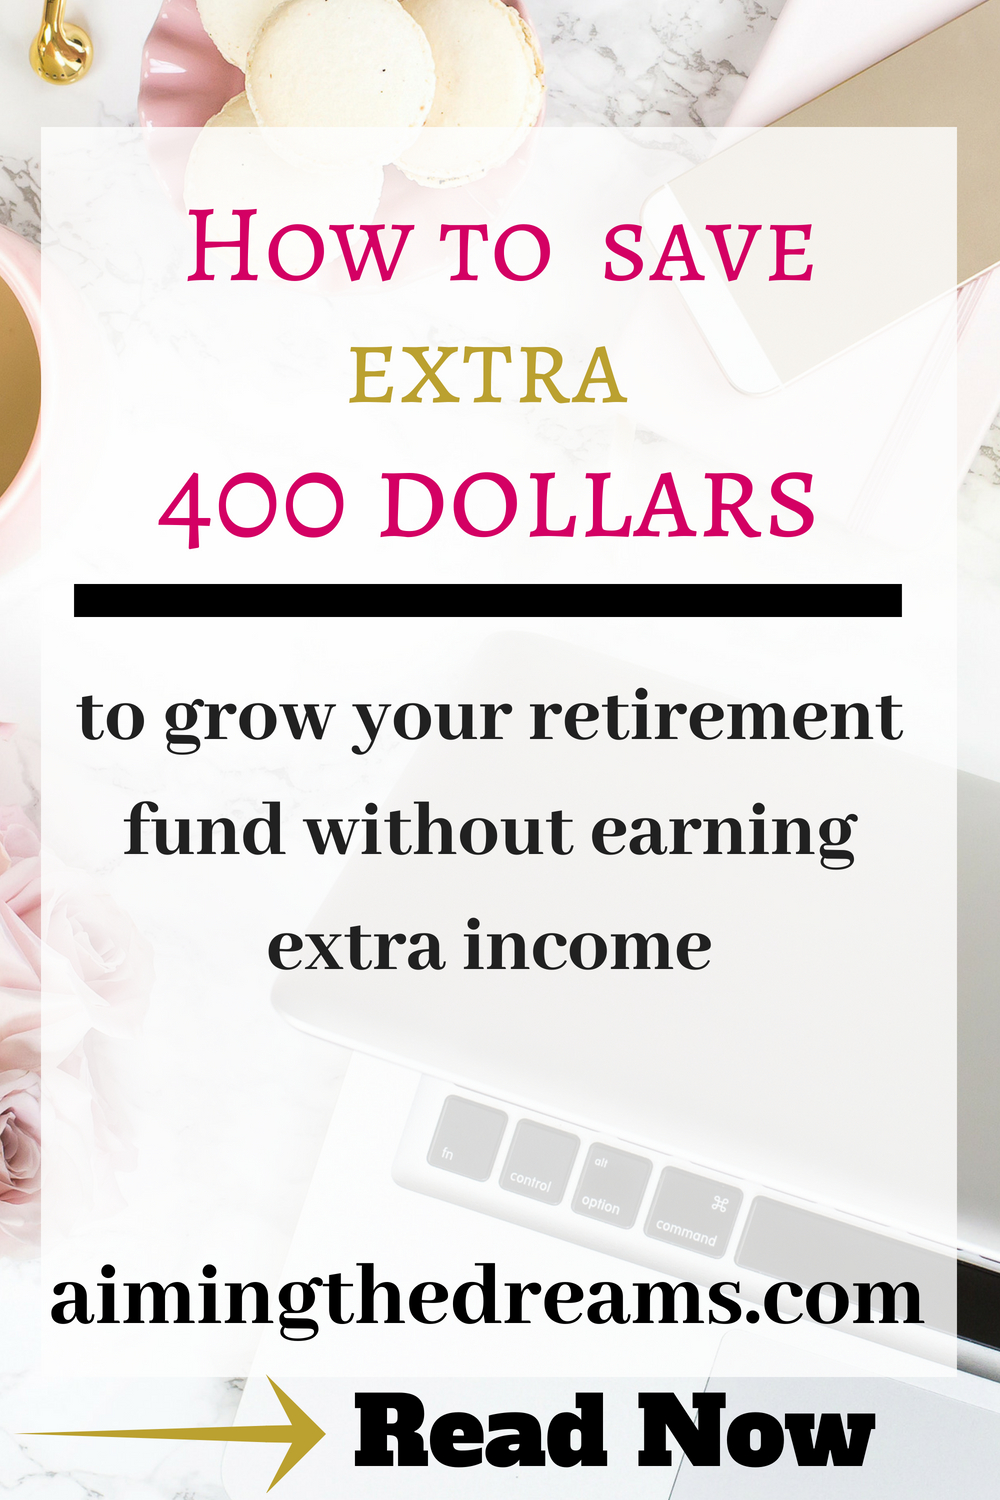 Save extra 400 dollars for your retirement from yuor already tight budget and doing some extra side hustles.